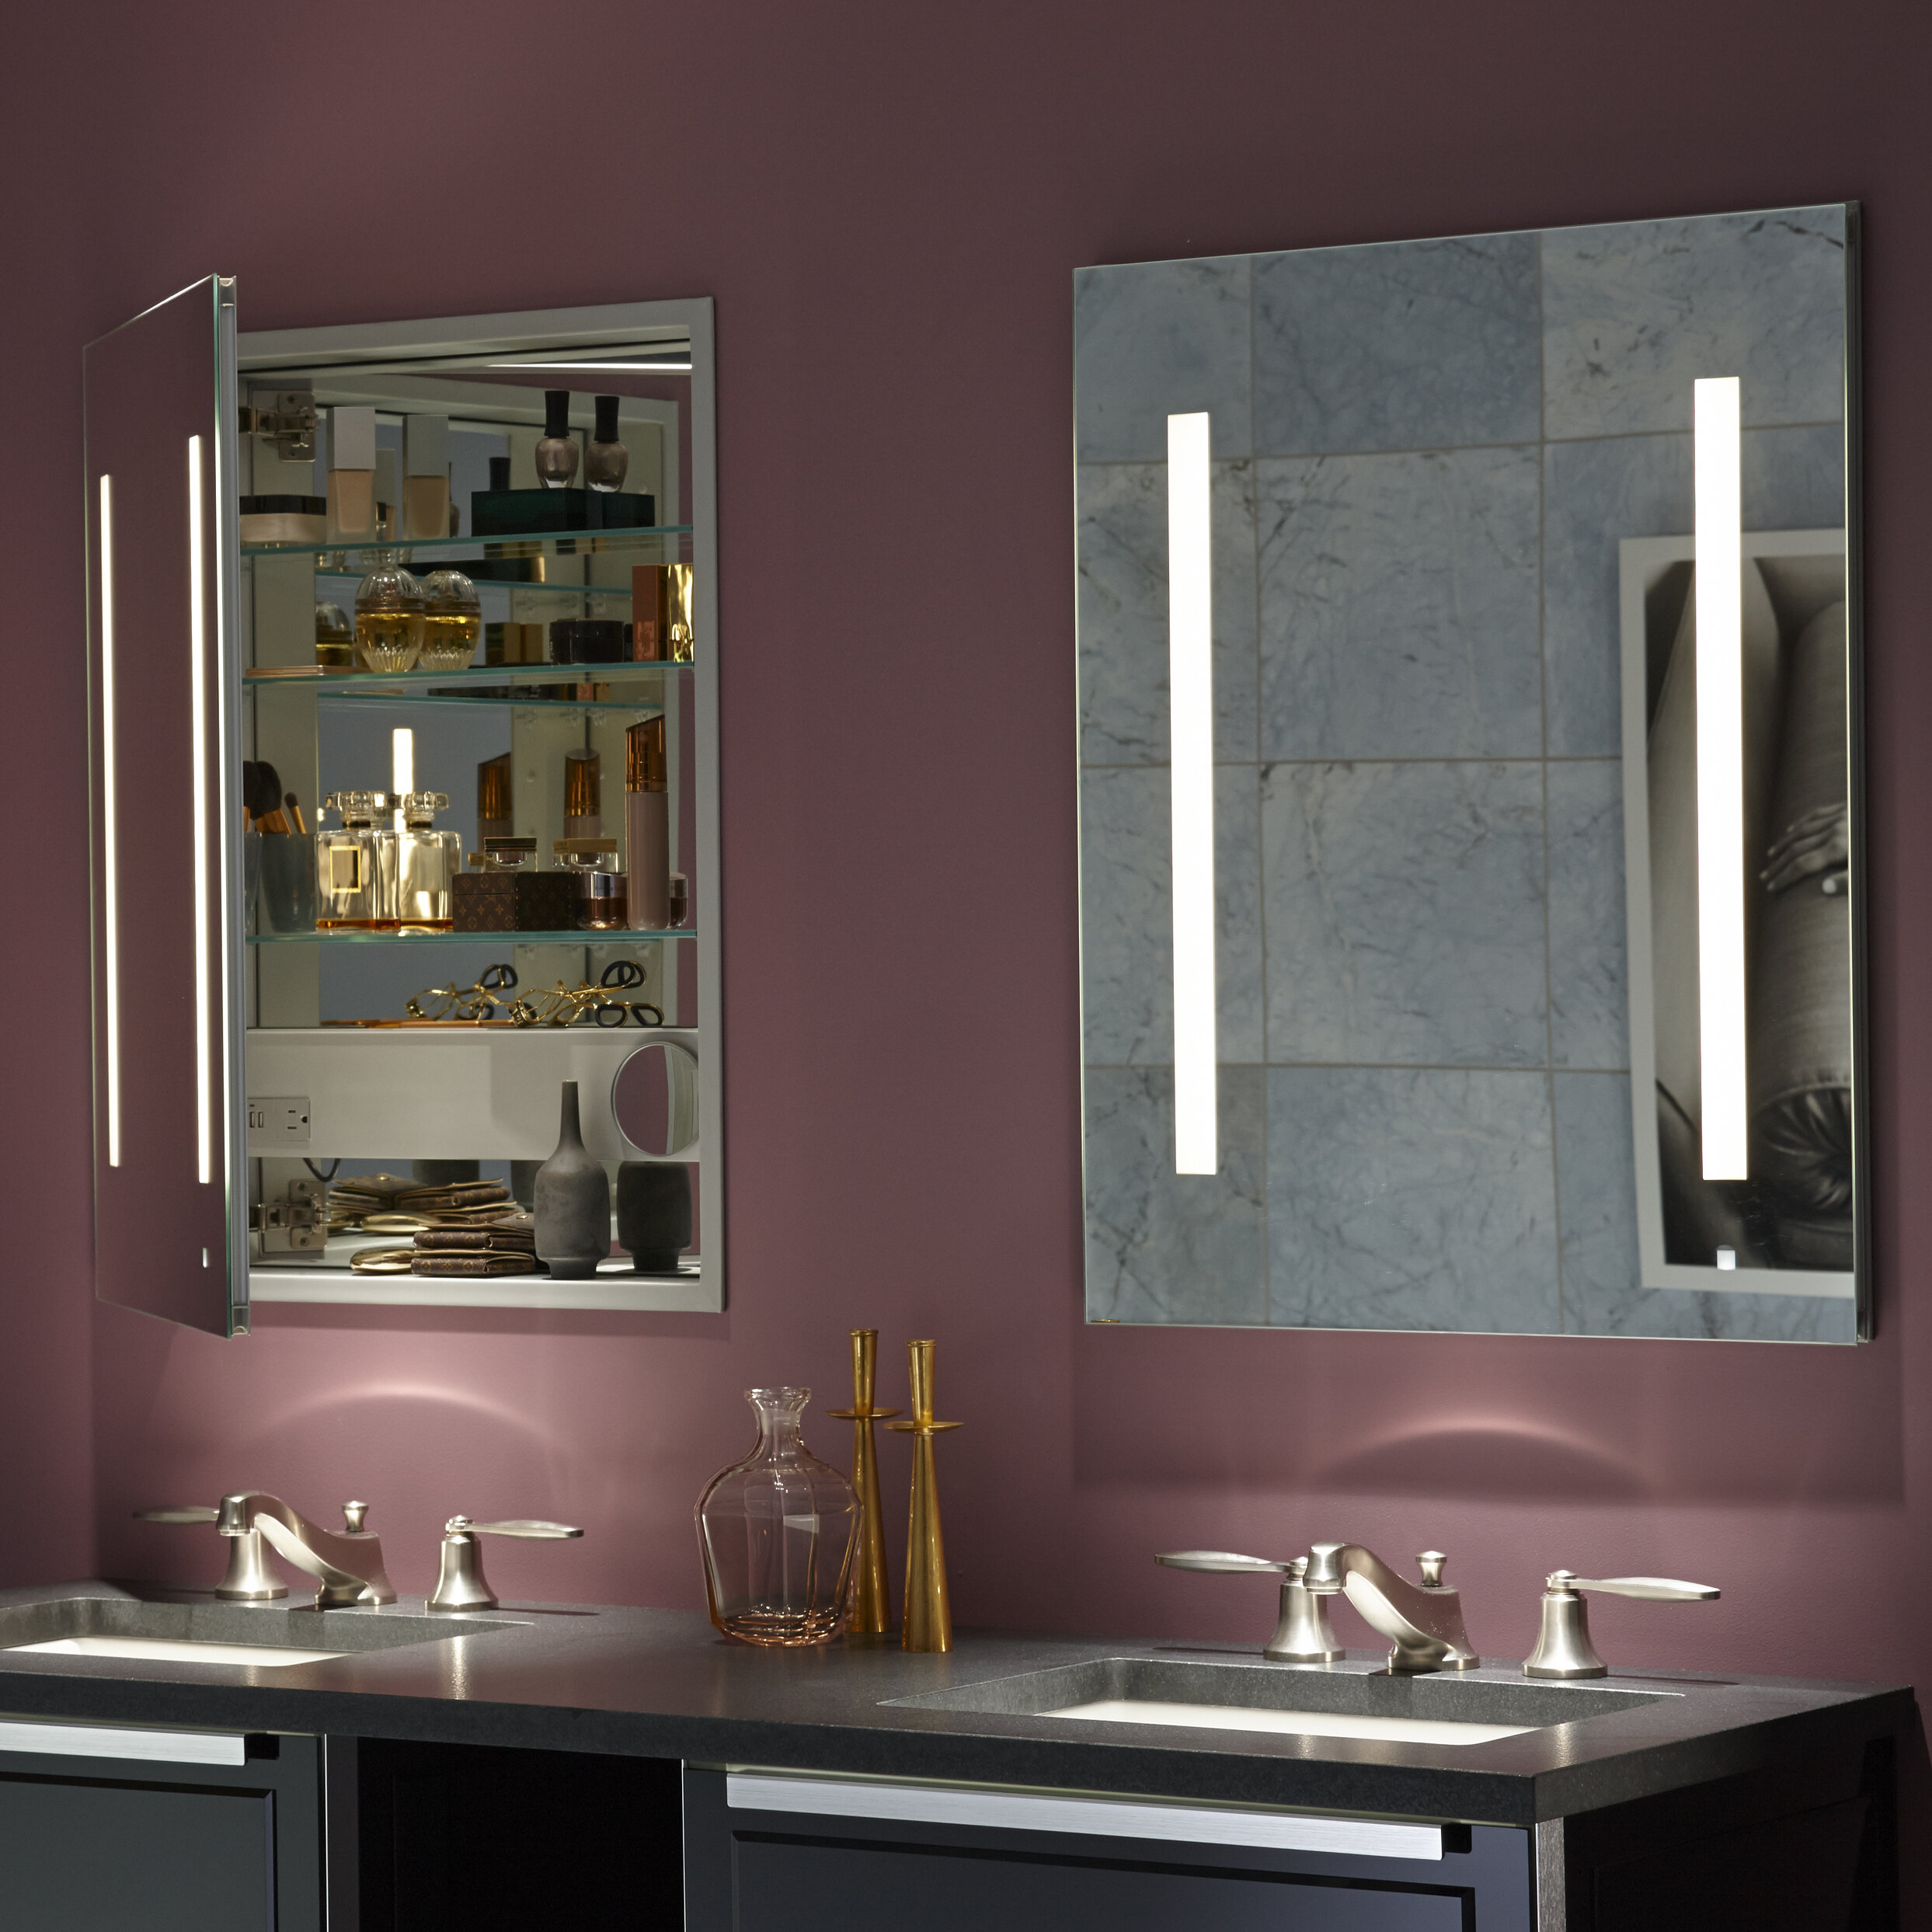 lowes cabinet steel cabinets roth com recessed medicine bathroom x allen storage in pl rectangle shop surface at mirrored